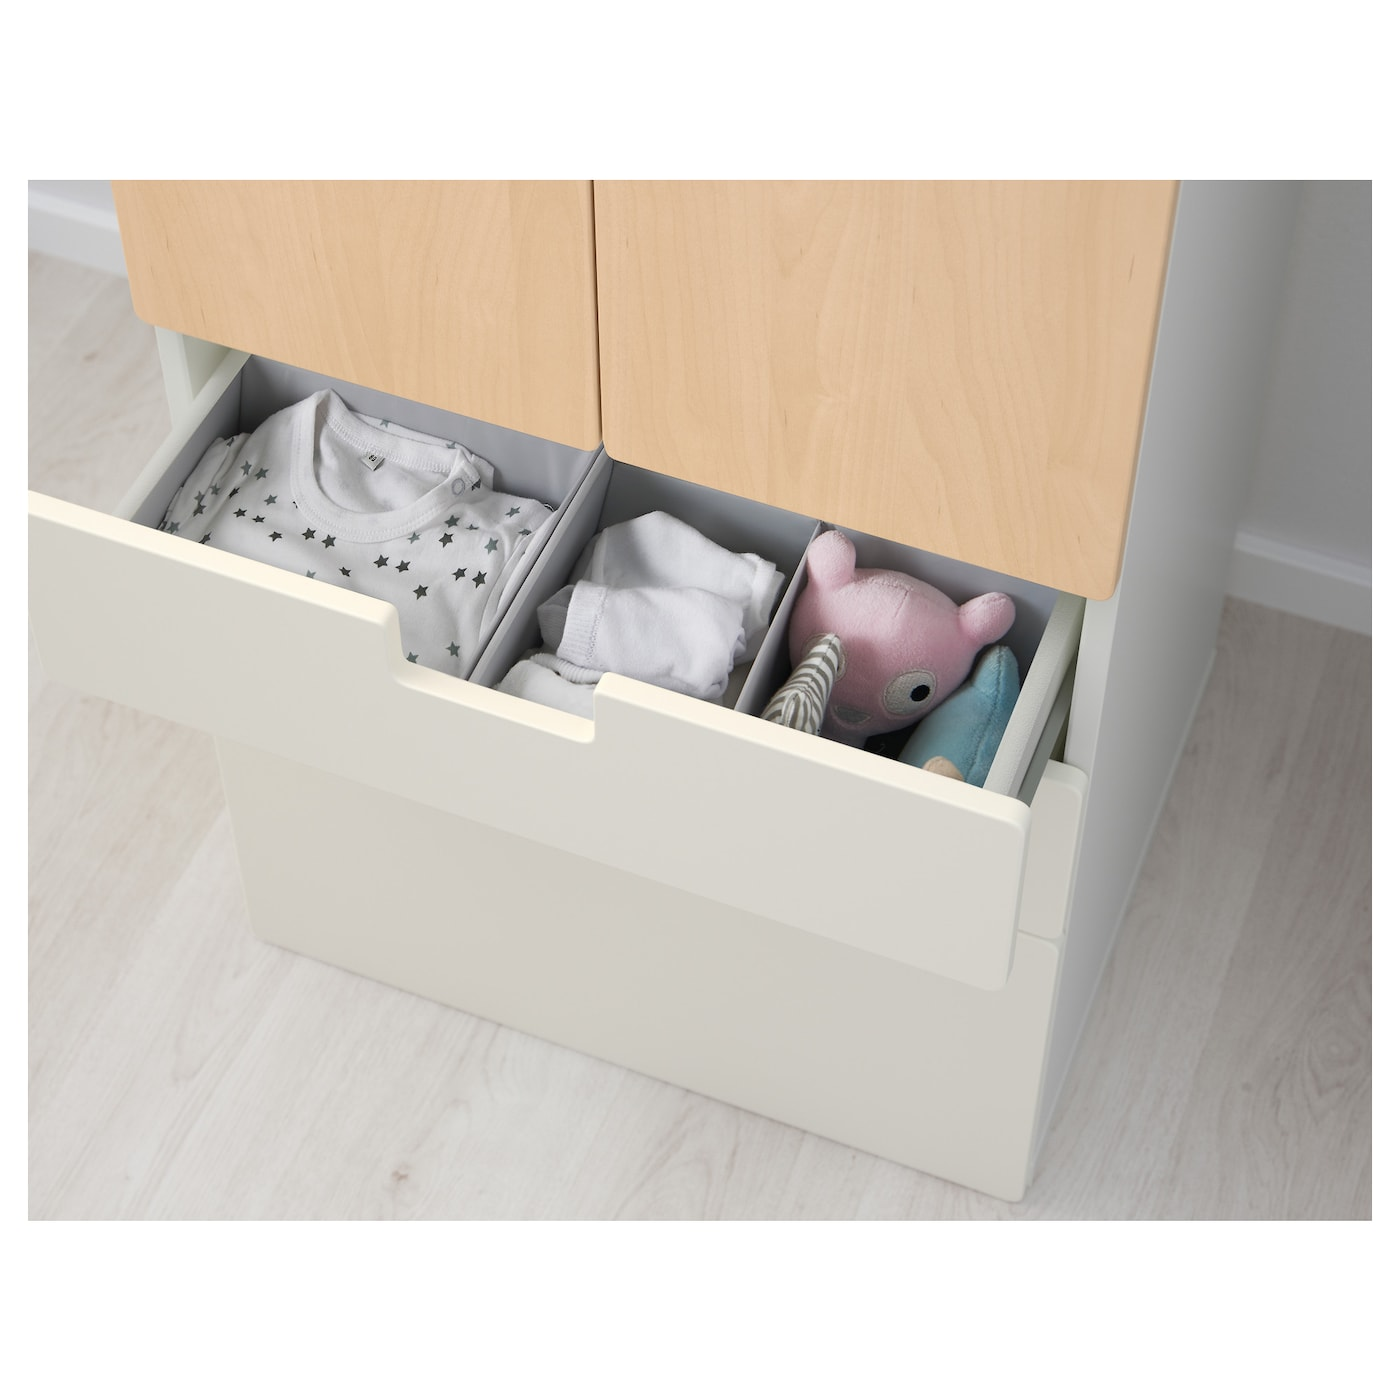 IKEA STUVA storage combination w doors/drawers Deep enough to hold standard-sized adult hangers.